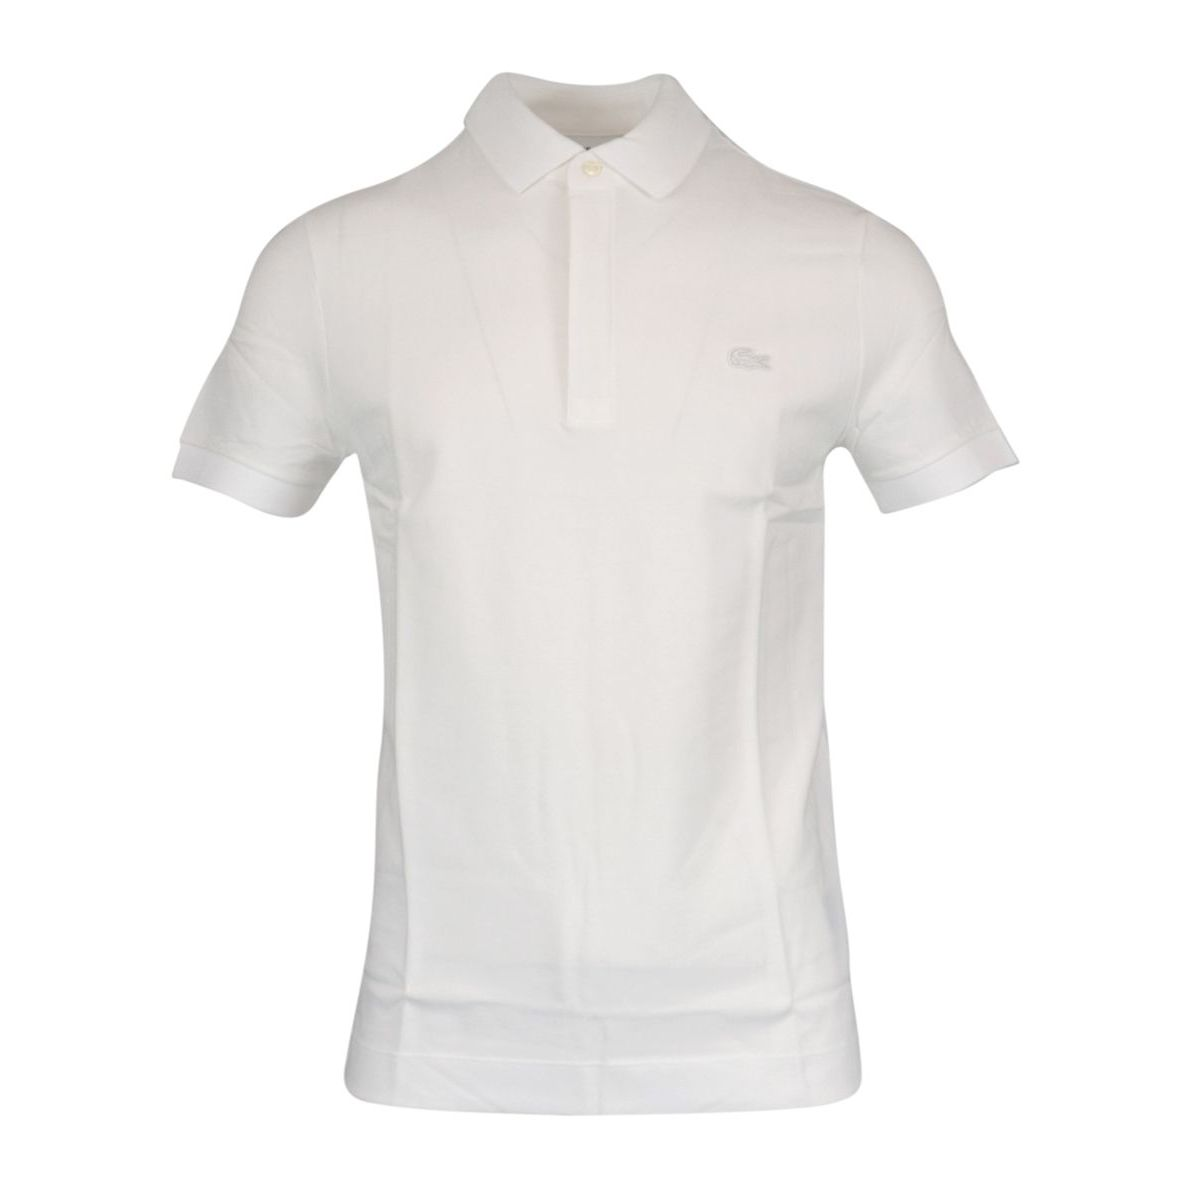 Regular Fit polo shirt in stretch cotton pique White Lacoste